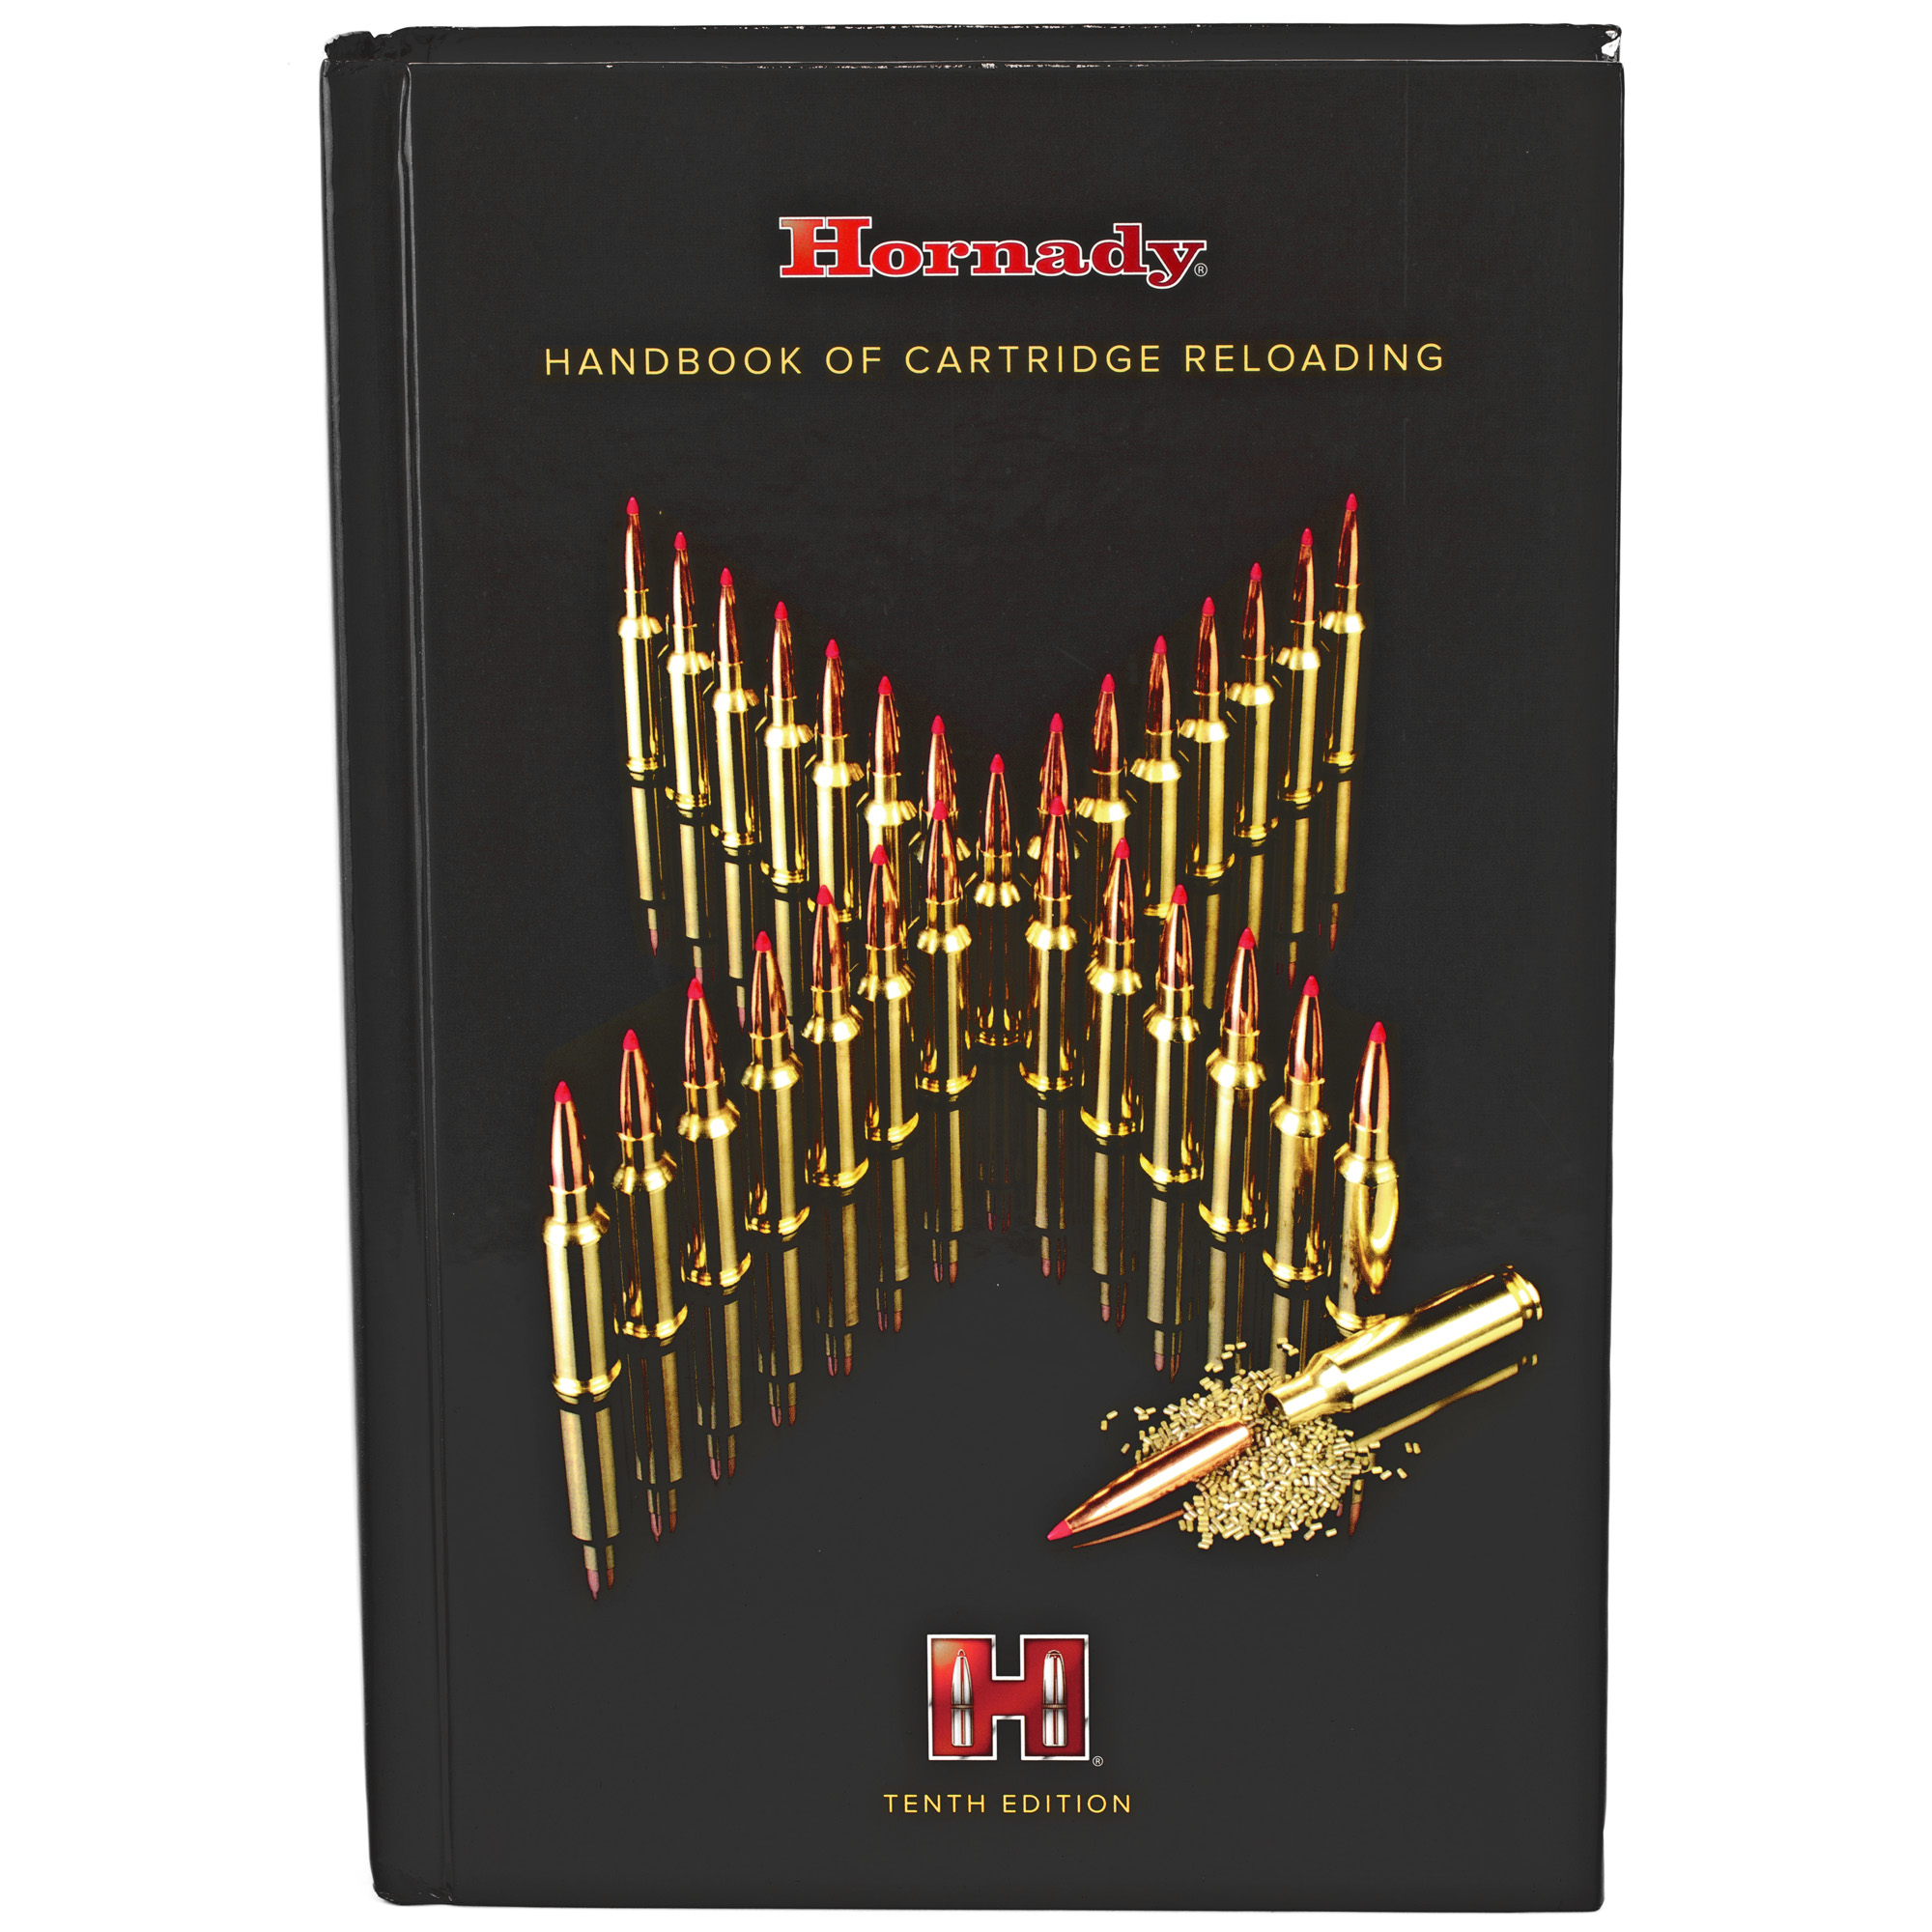 "The 10th Edition Handbook of Cartridge Reloading is packed with the latest from Hornady. Available at retailers nationwide and online"" access all the information you need in print or digital formats."